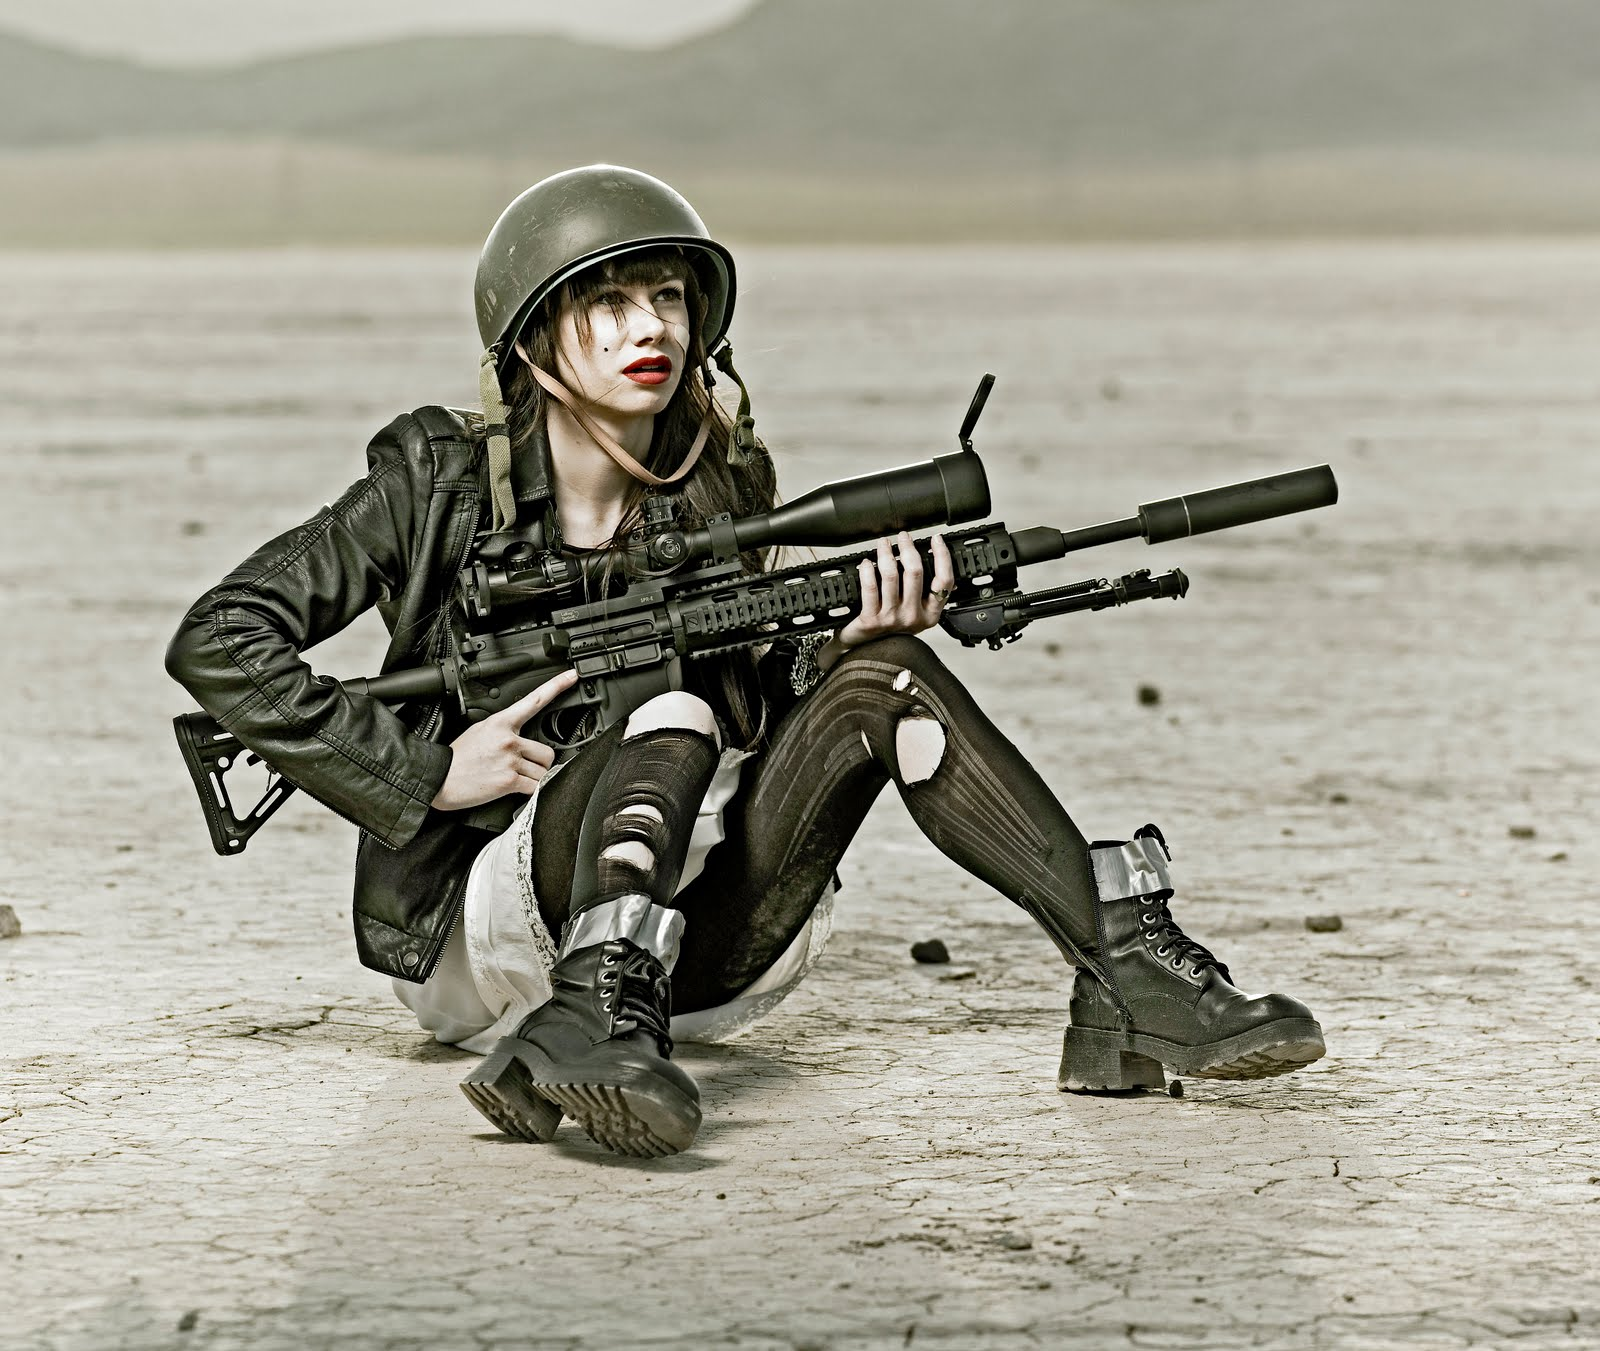 18 Best Army War Picture And Wallpapers Wallpaper Collection For 1600x1351